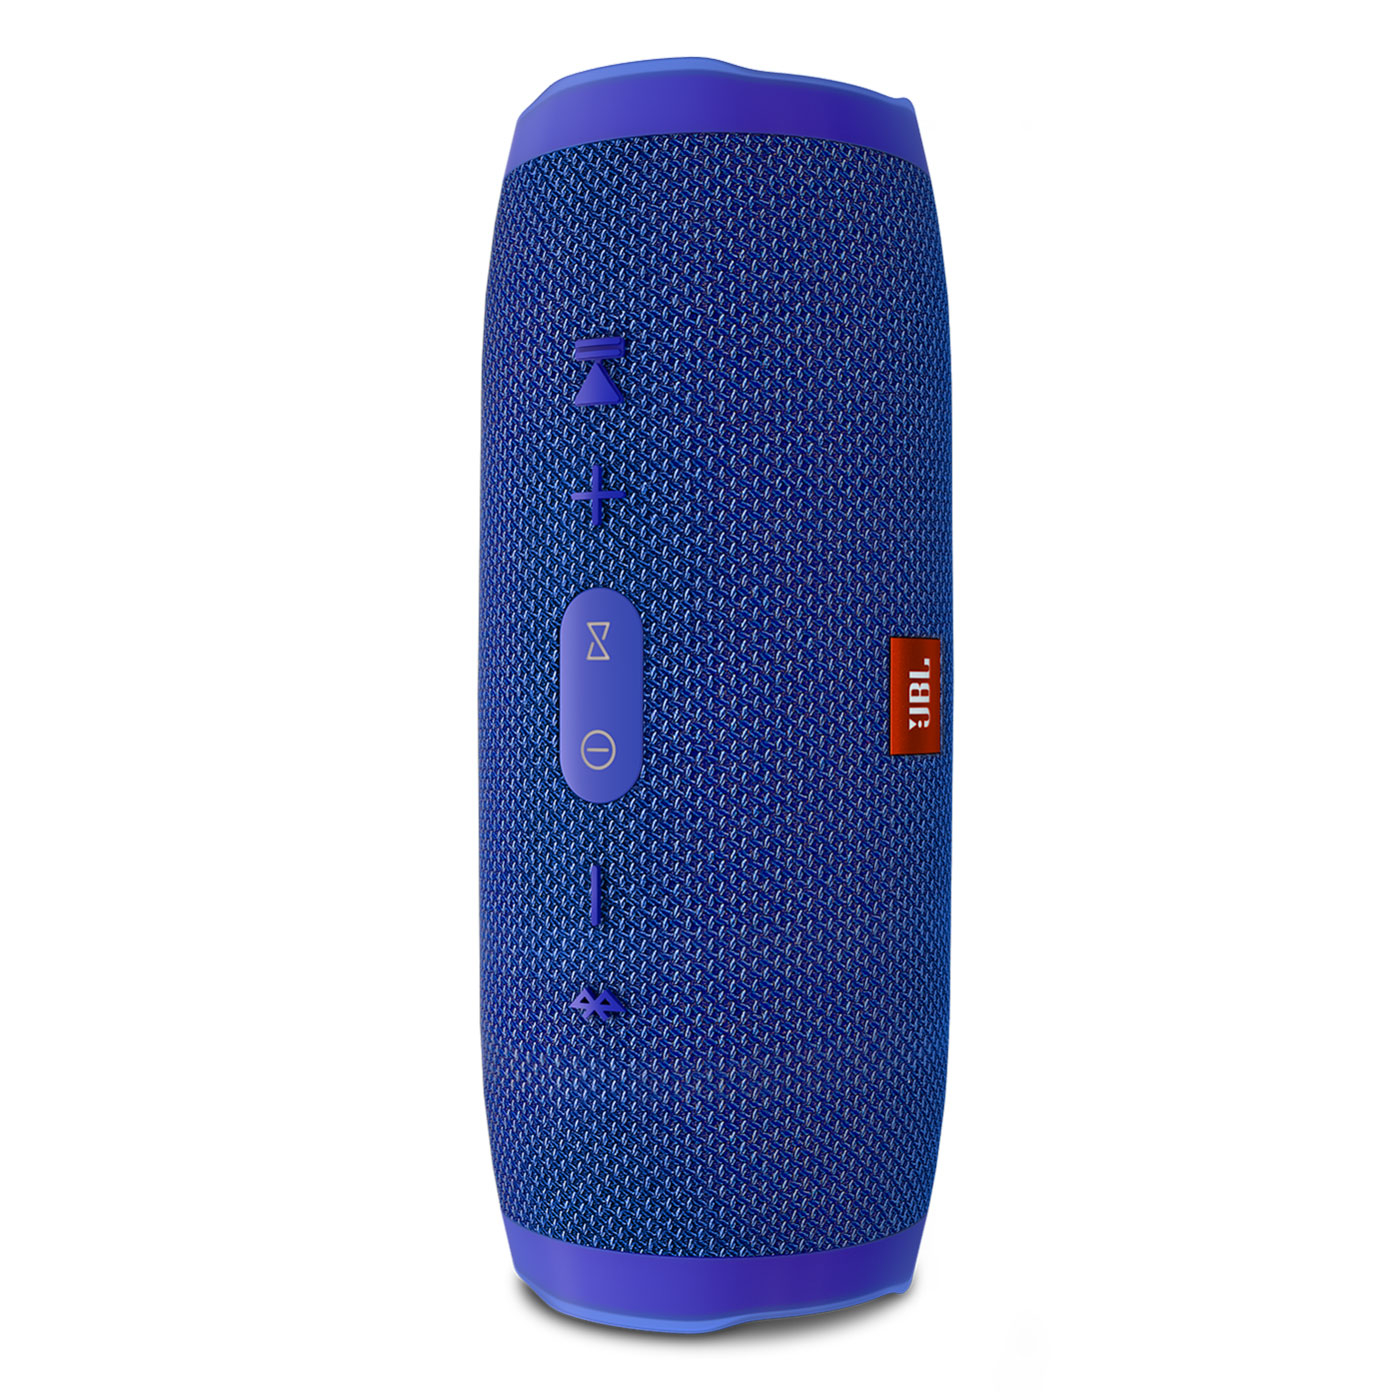 Jbl Charge 3 Waterproof Portable Bluetooth Speaker With Built In Li Mini Wireless Charger 1 Ion Battery And Usb Port For Mobile Devices Blue